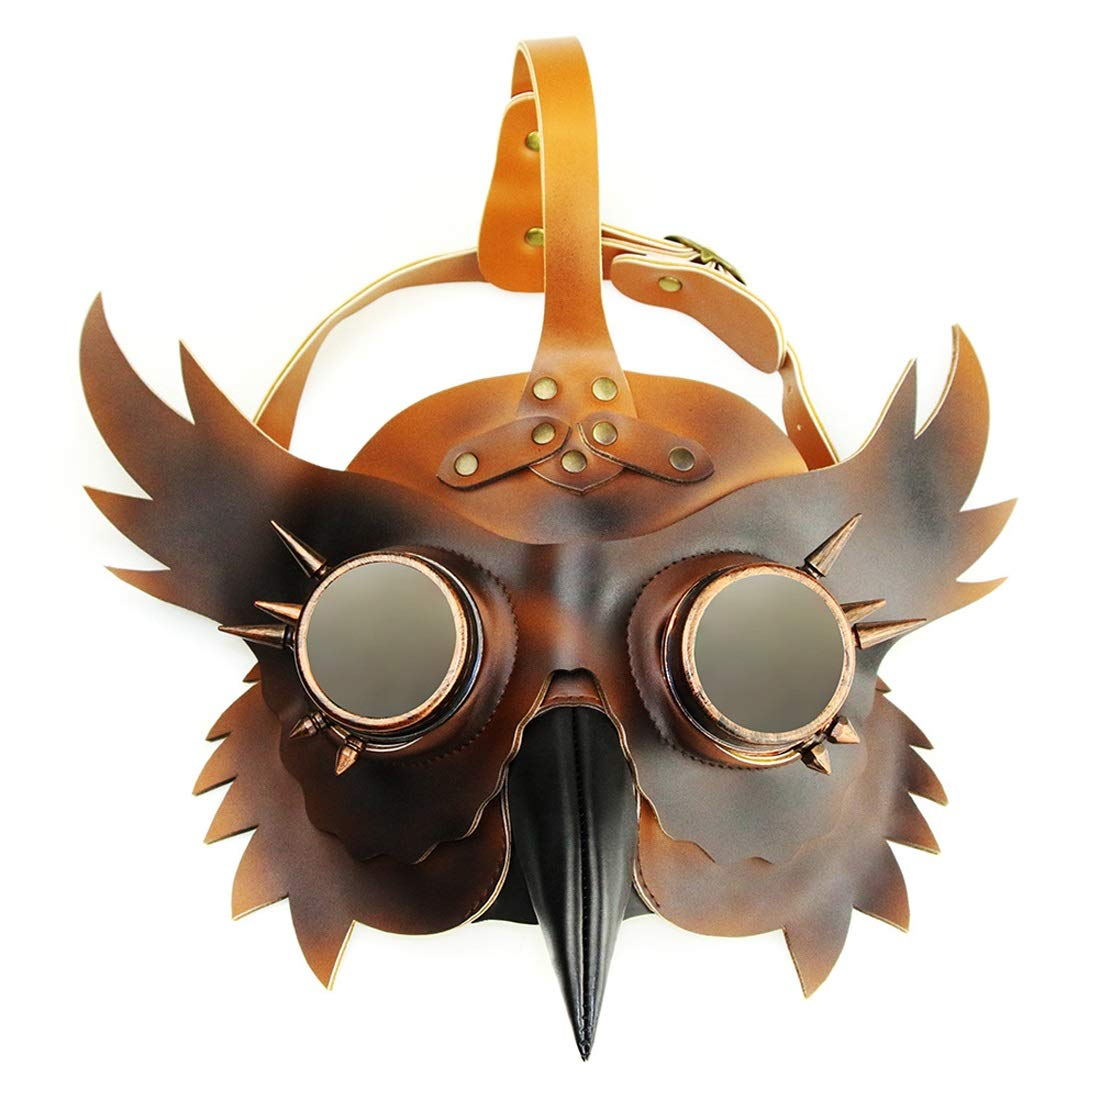 Winfridy Steampunk Halloween Bar Requisiten Lange Nase Vogel Maske